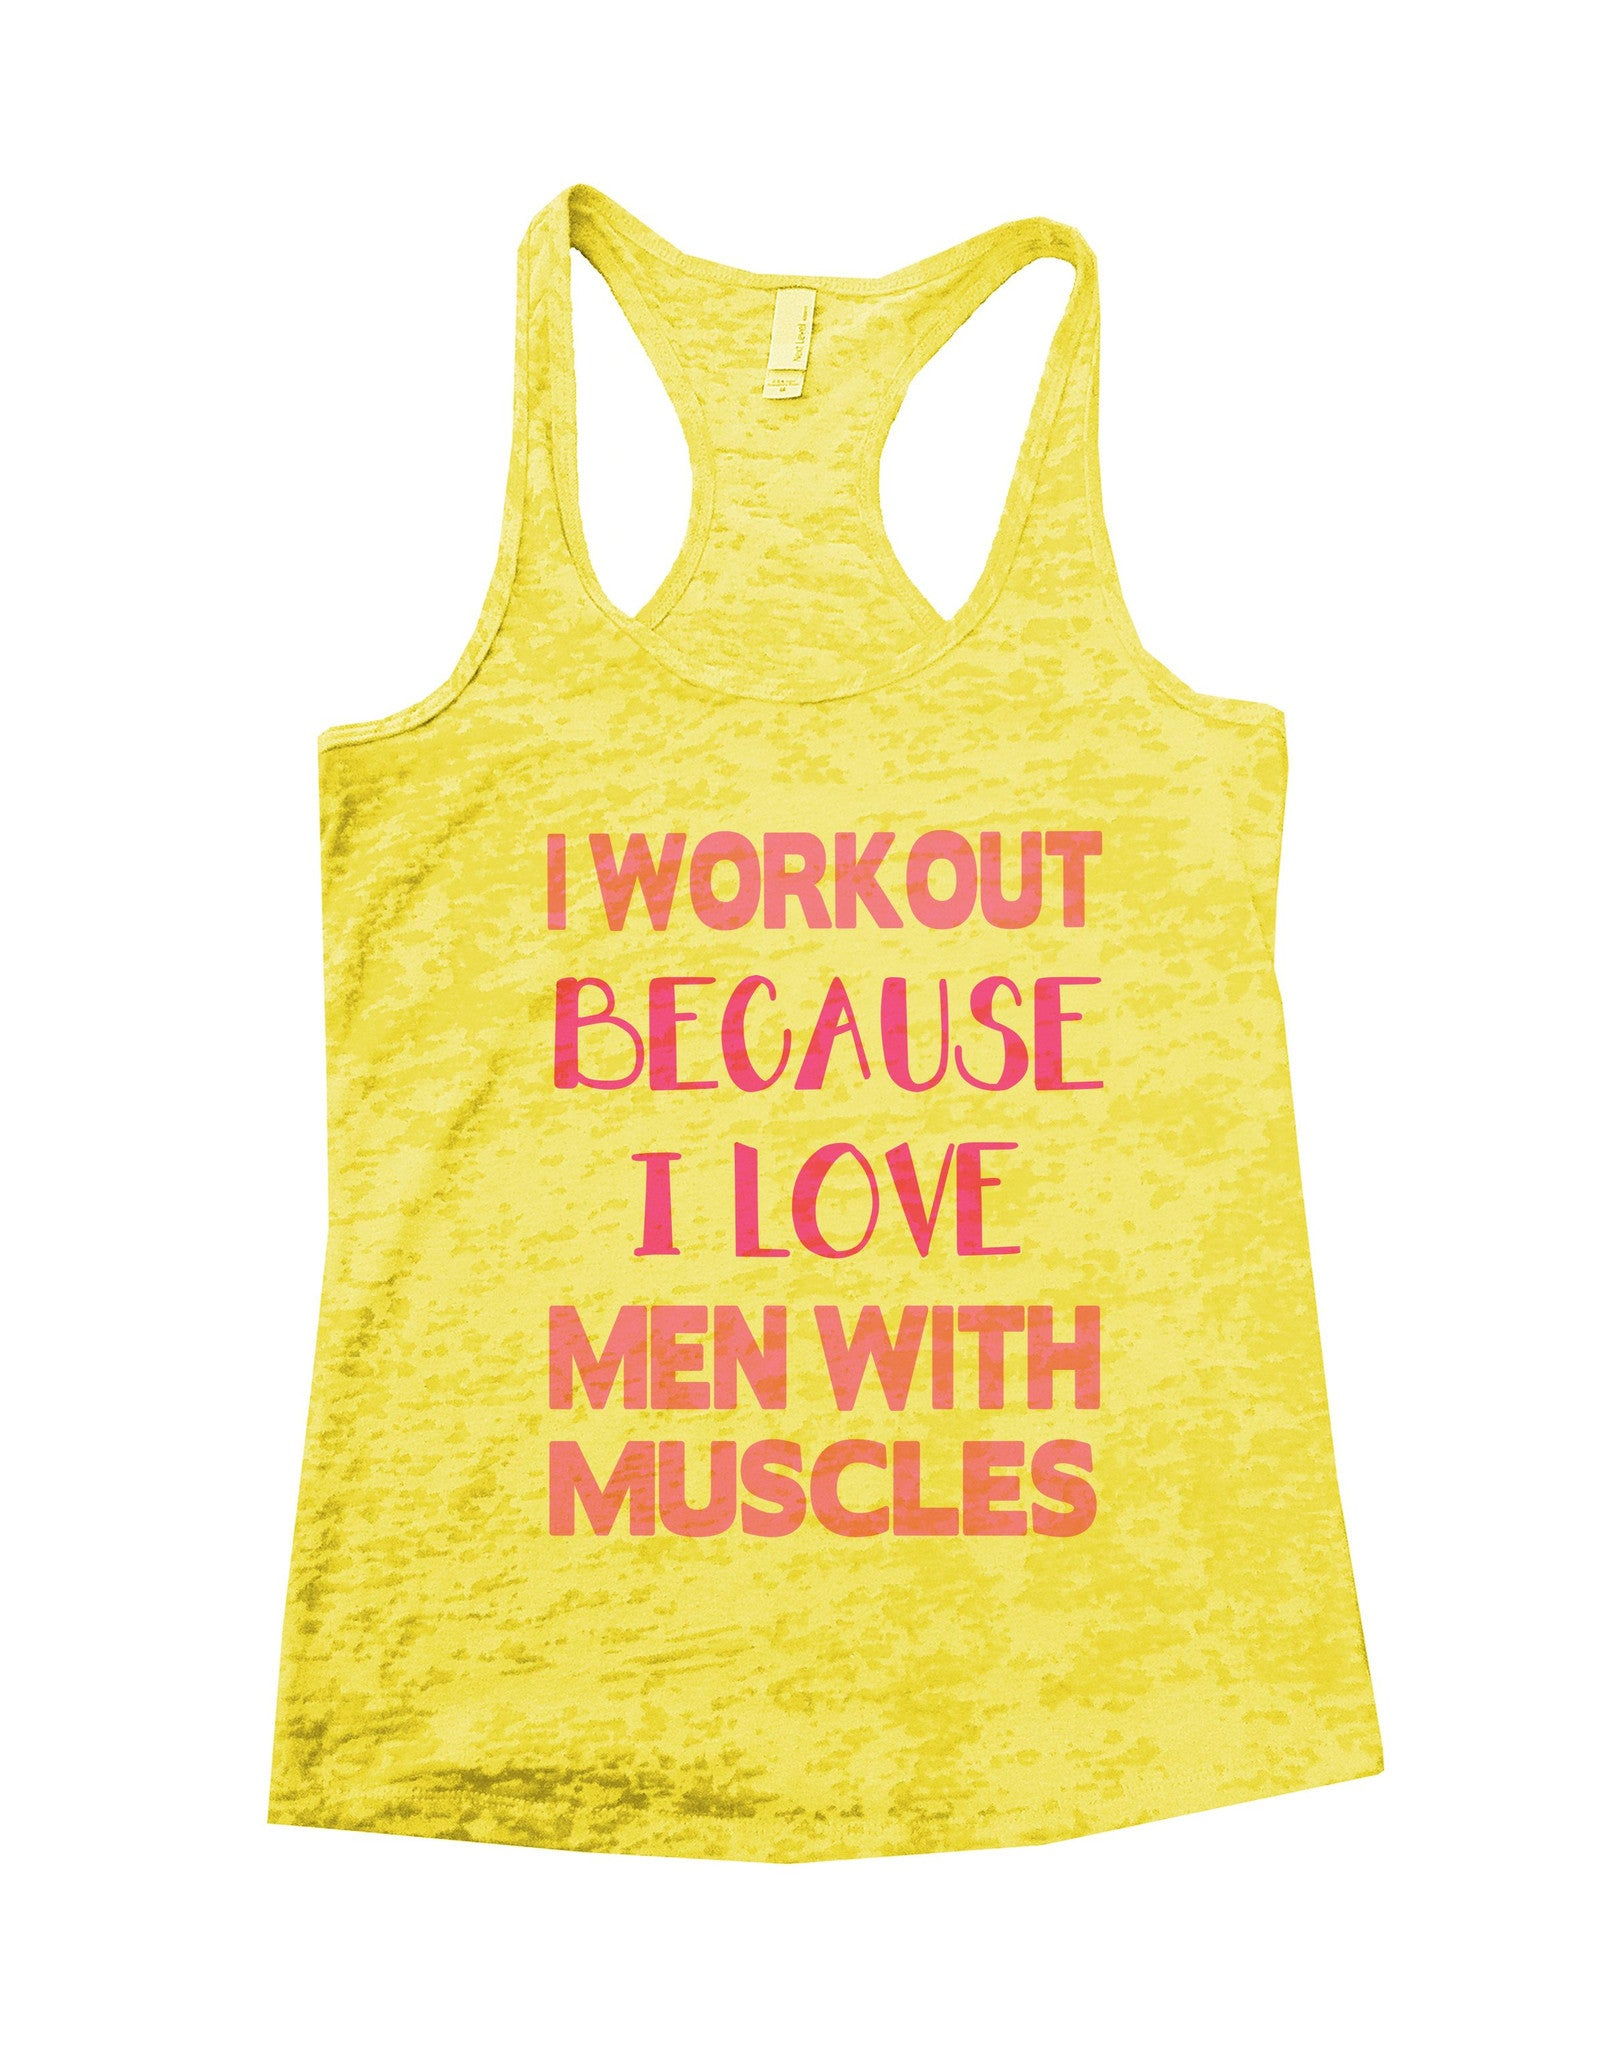 I Workout Because I Love Men With Muscles Burnout Tank Top By BurnoutTankTops.com - 640 - Funny Shirts Tank Tops Burnouts and Triblends  - 4